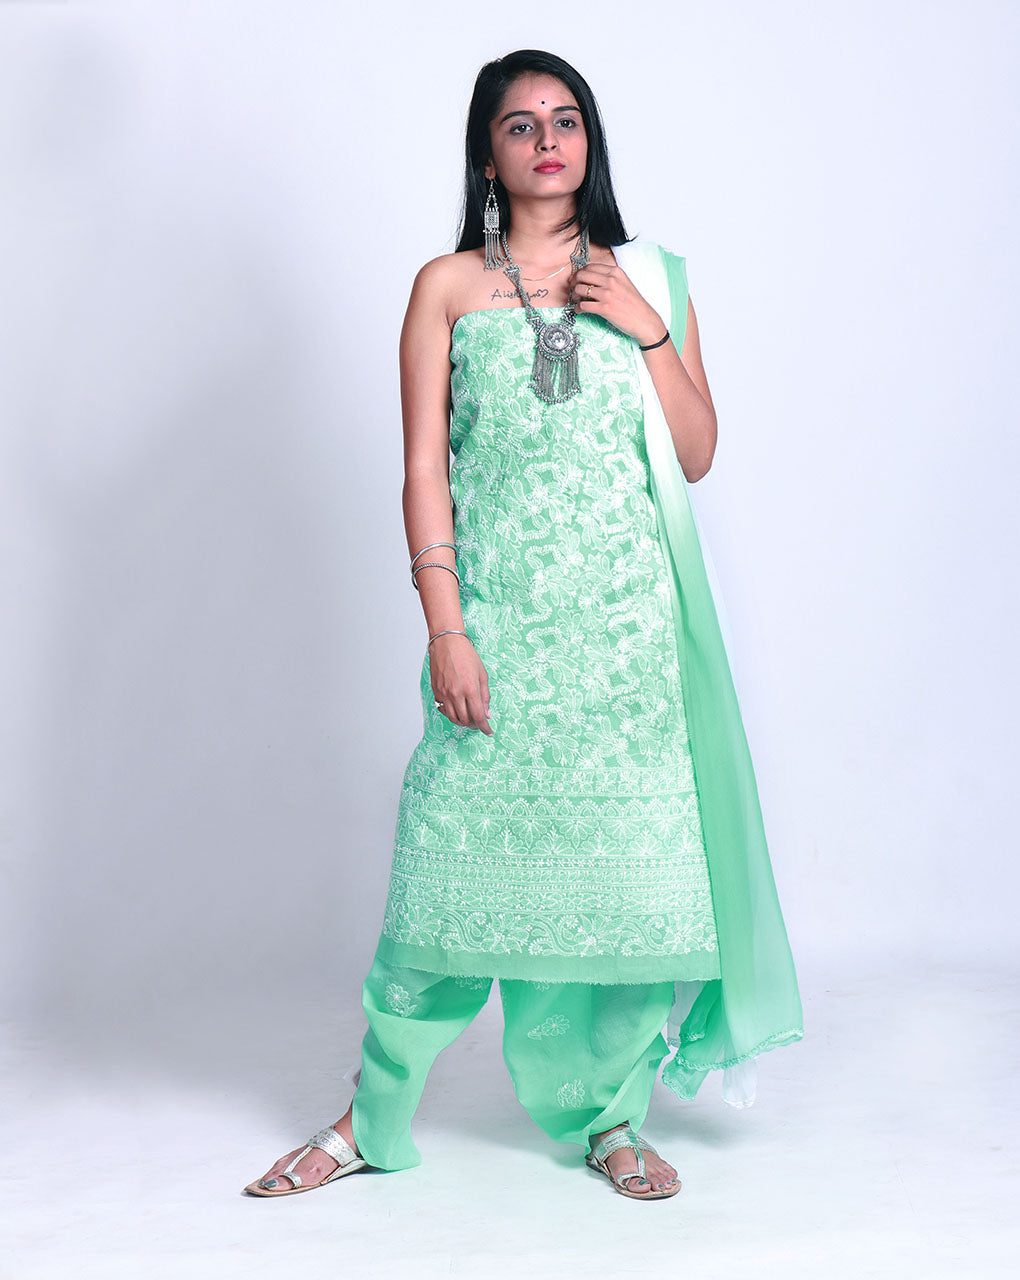 Green White Lucknowi Chikan Hand Embroidery Cotton Unstitched Suit With Chiffon Dupatta Fabriclore